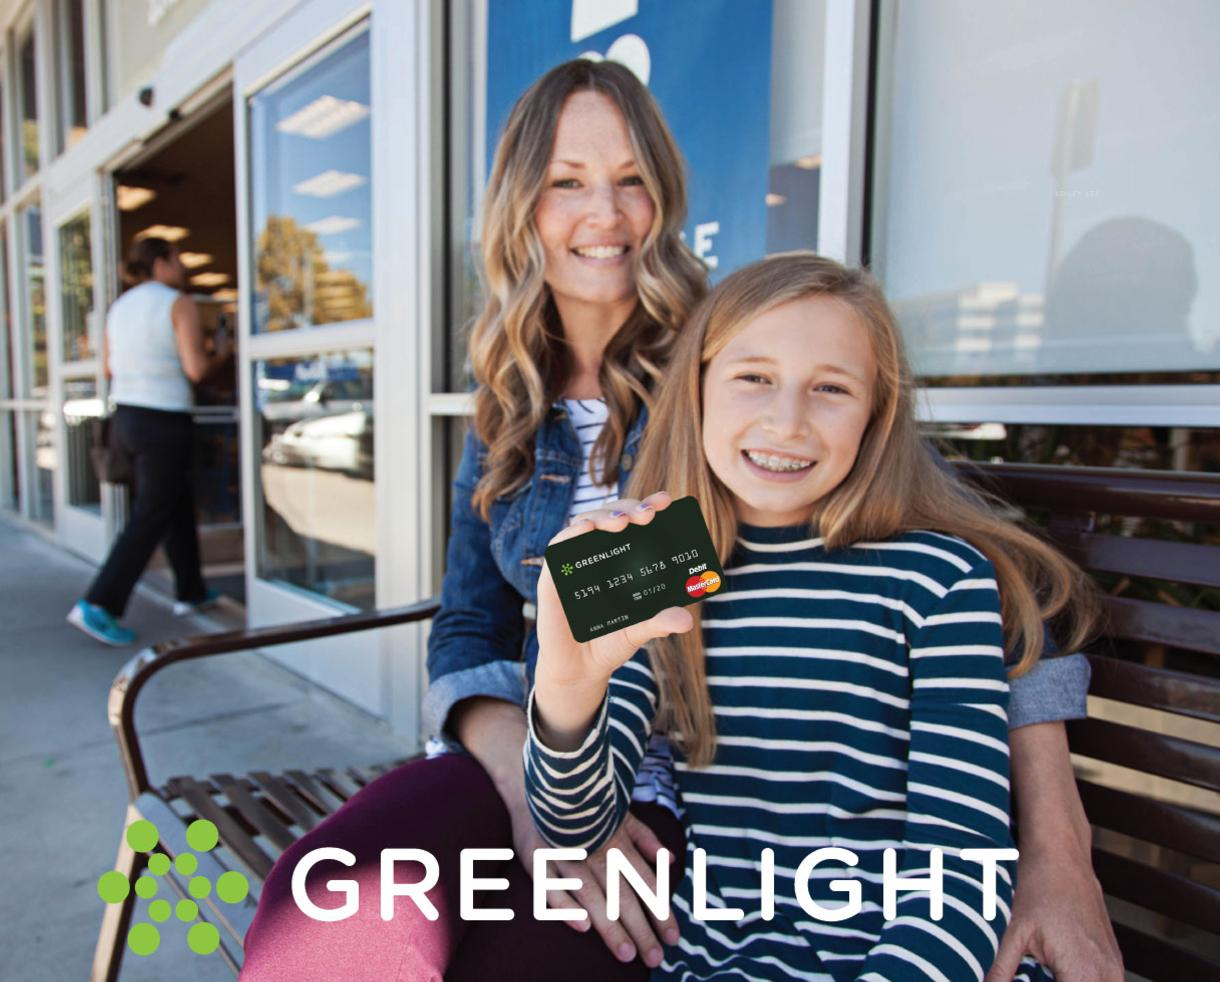 Greenlight® Kids Debit Card Special Offer - Try FREE for 30 Days and Receive $20 to Spend!